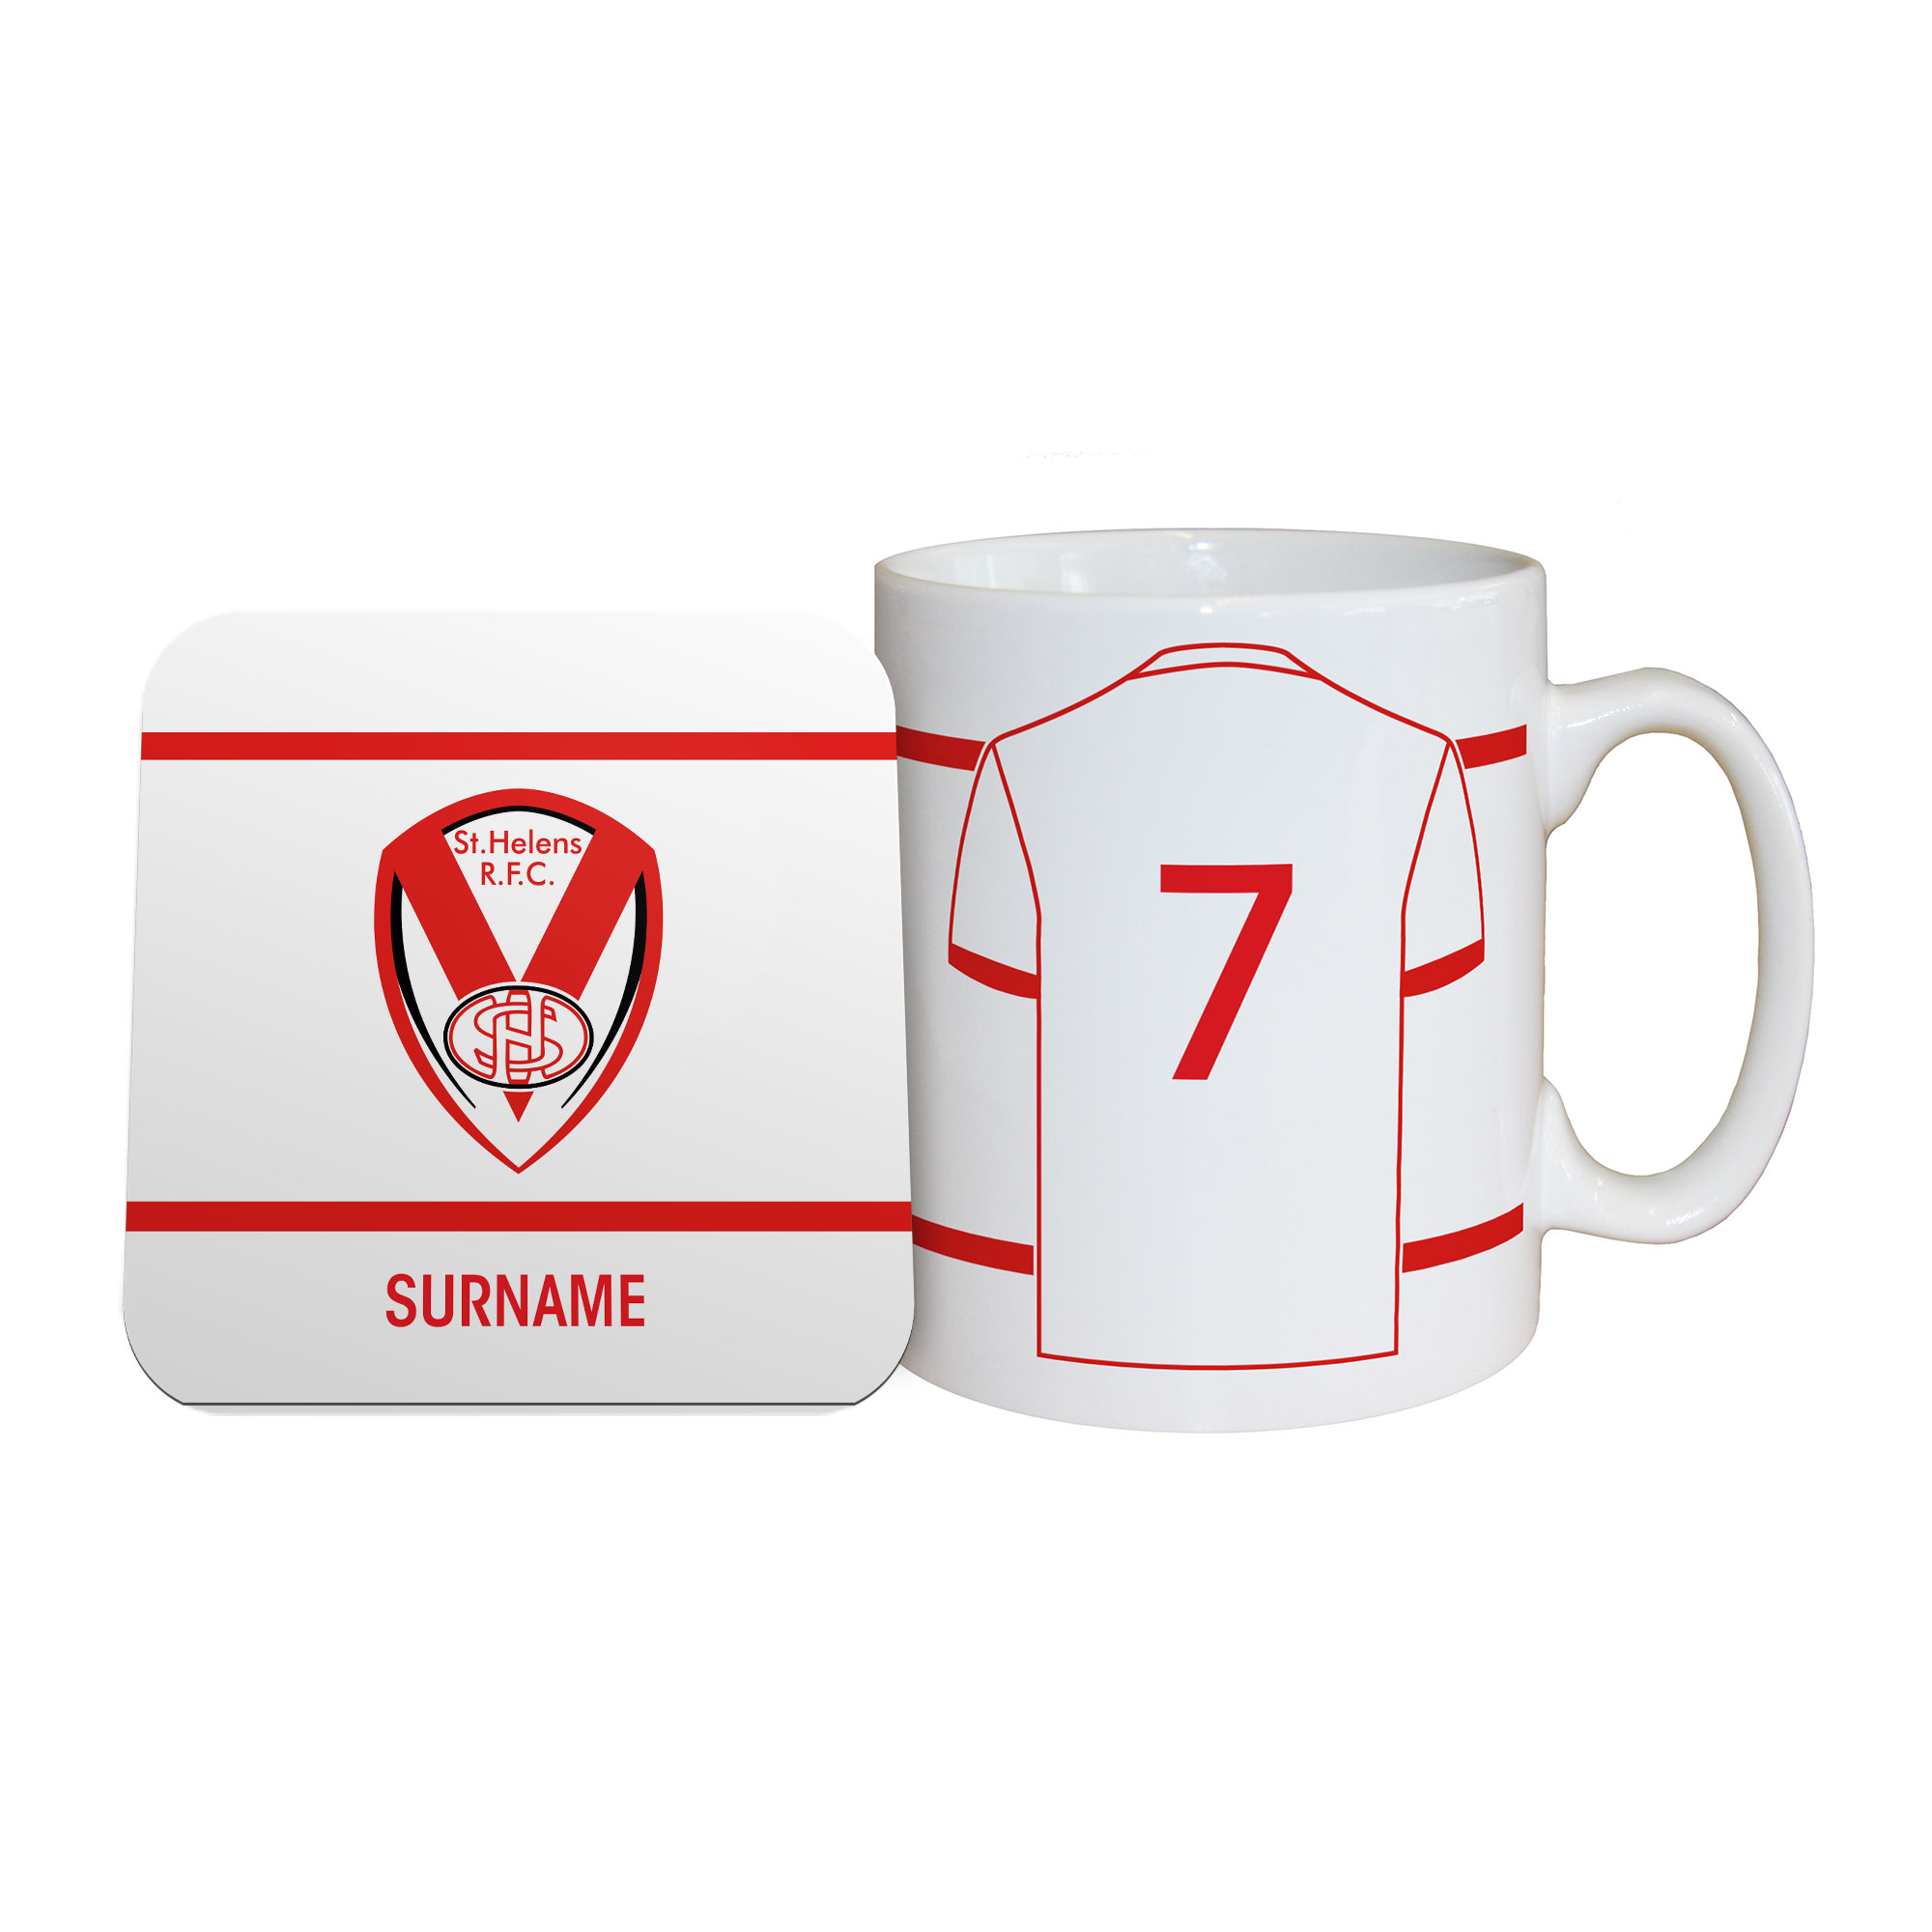 St Helens Shirt Mug & Coaster Set